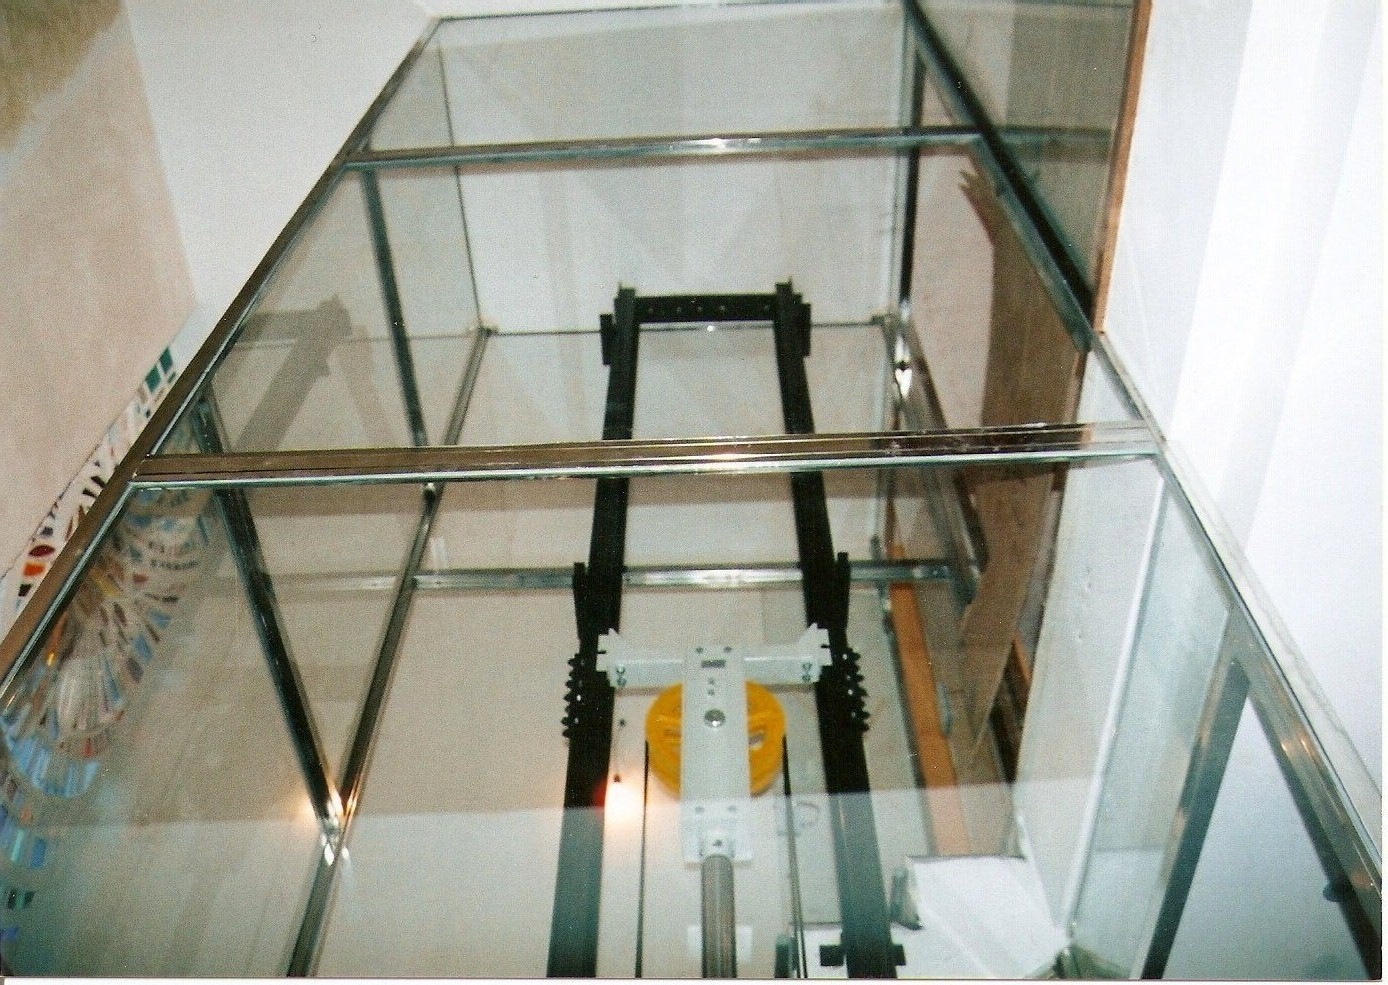 Glass elevator enclosure and stainless steel in Barcelona